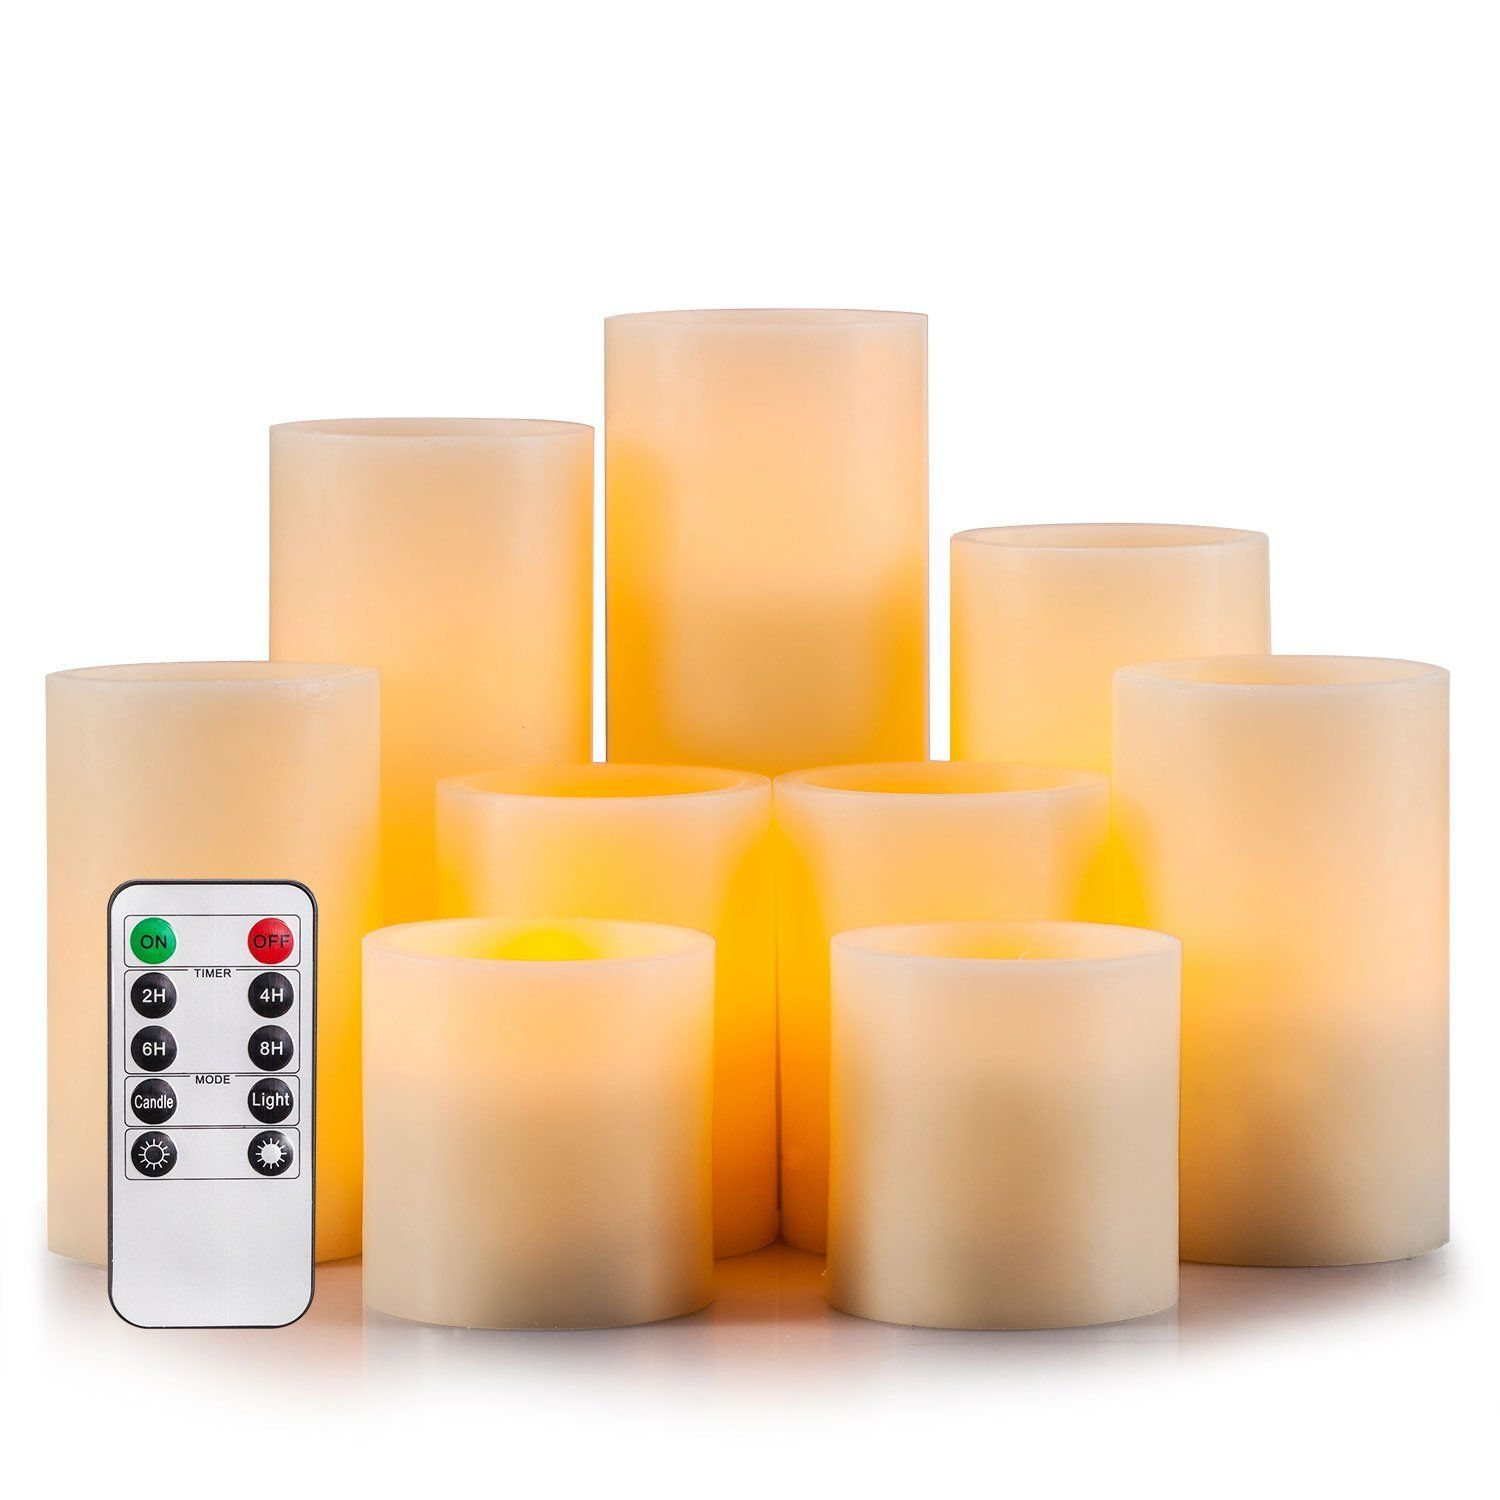 Enpornk flameless candles led pillar battery operated candles with